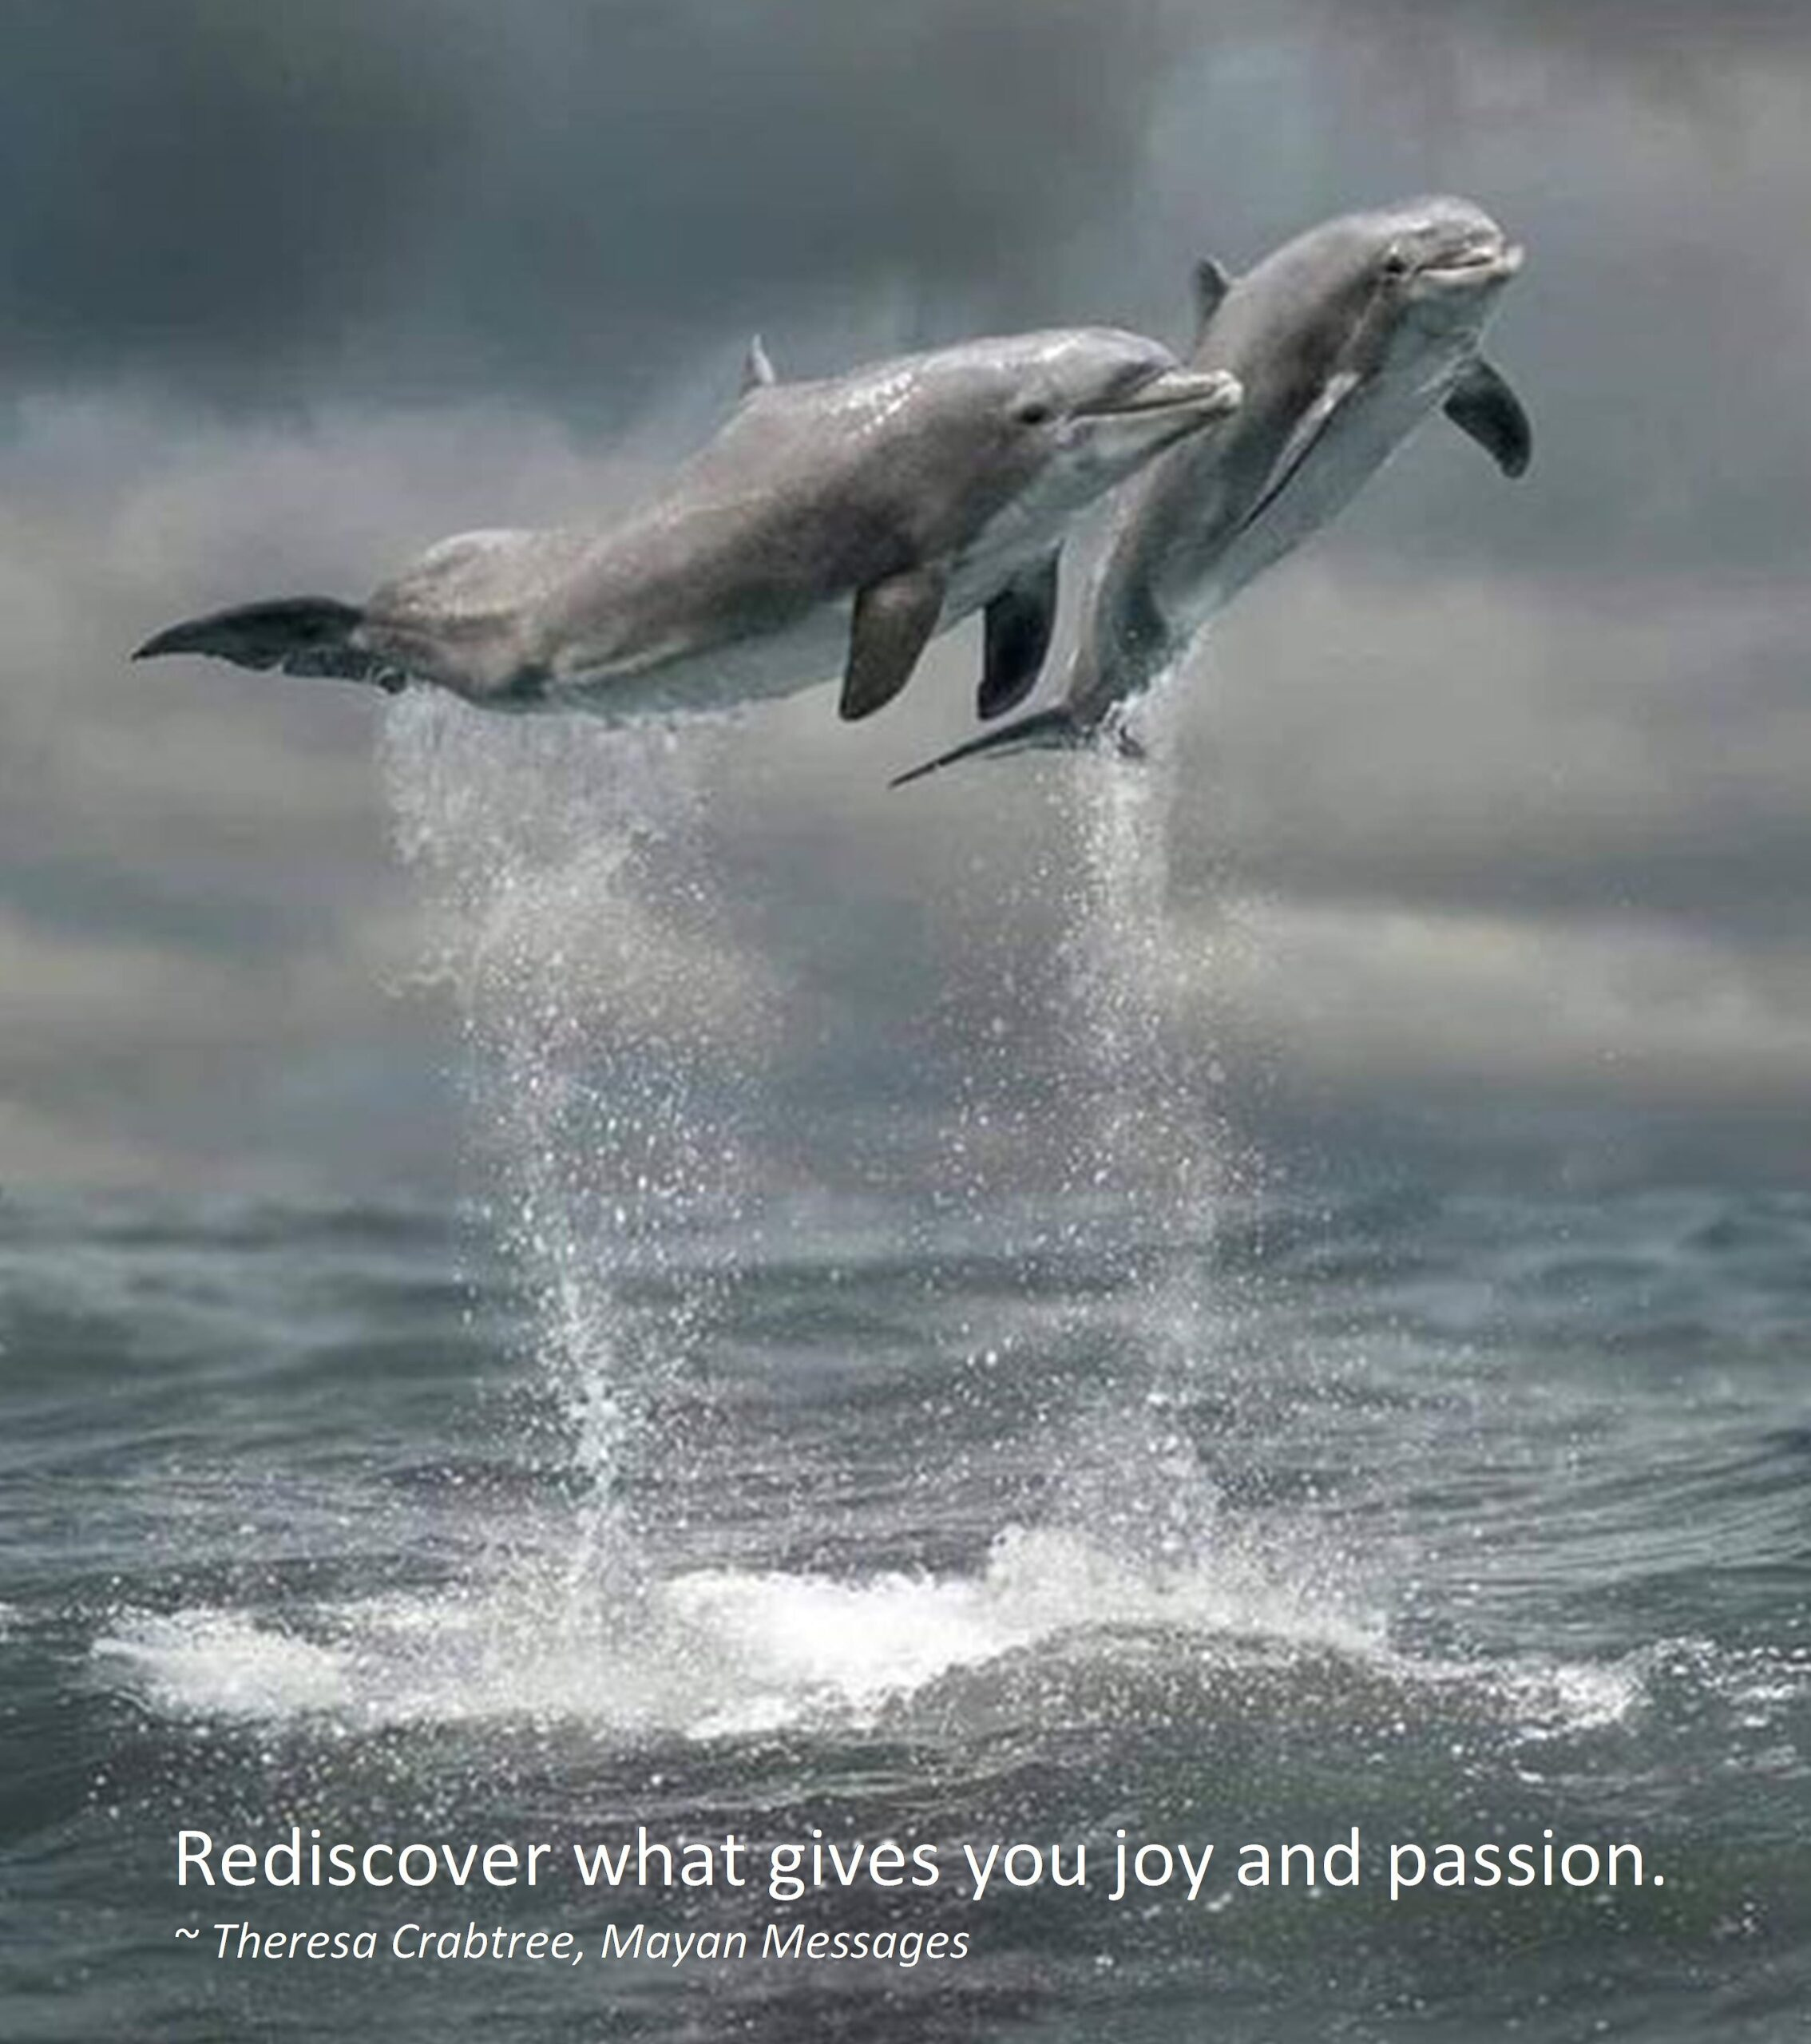 Rediscover Joy and Passion!